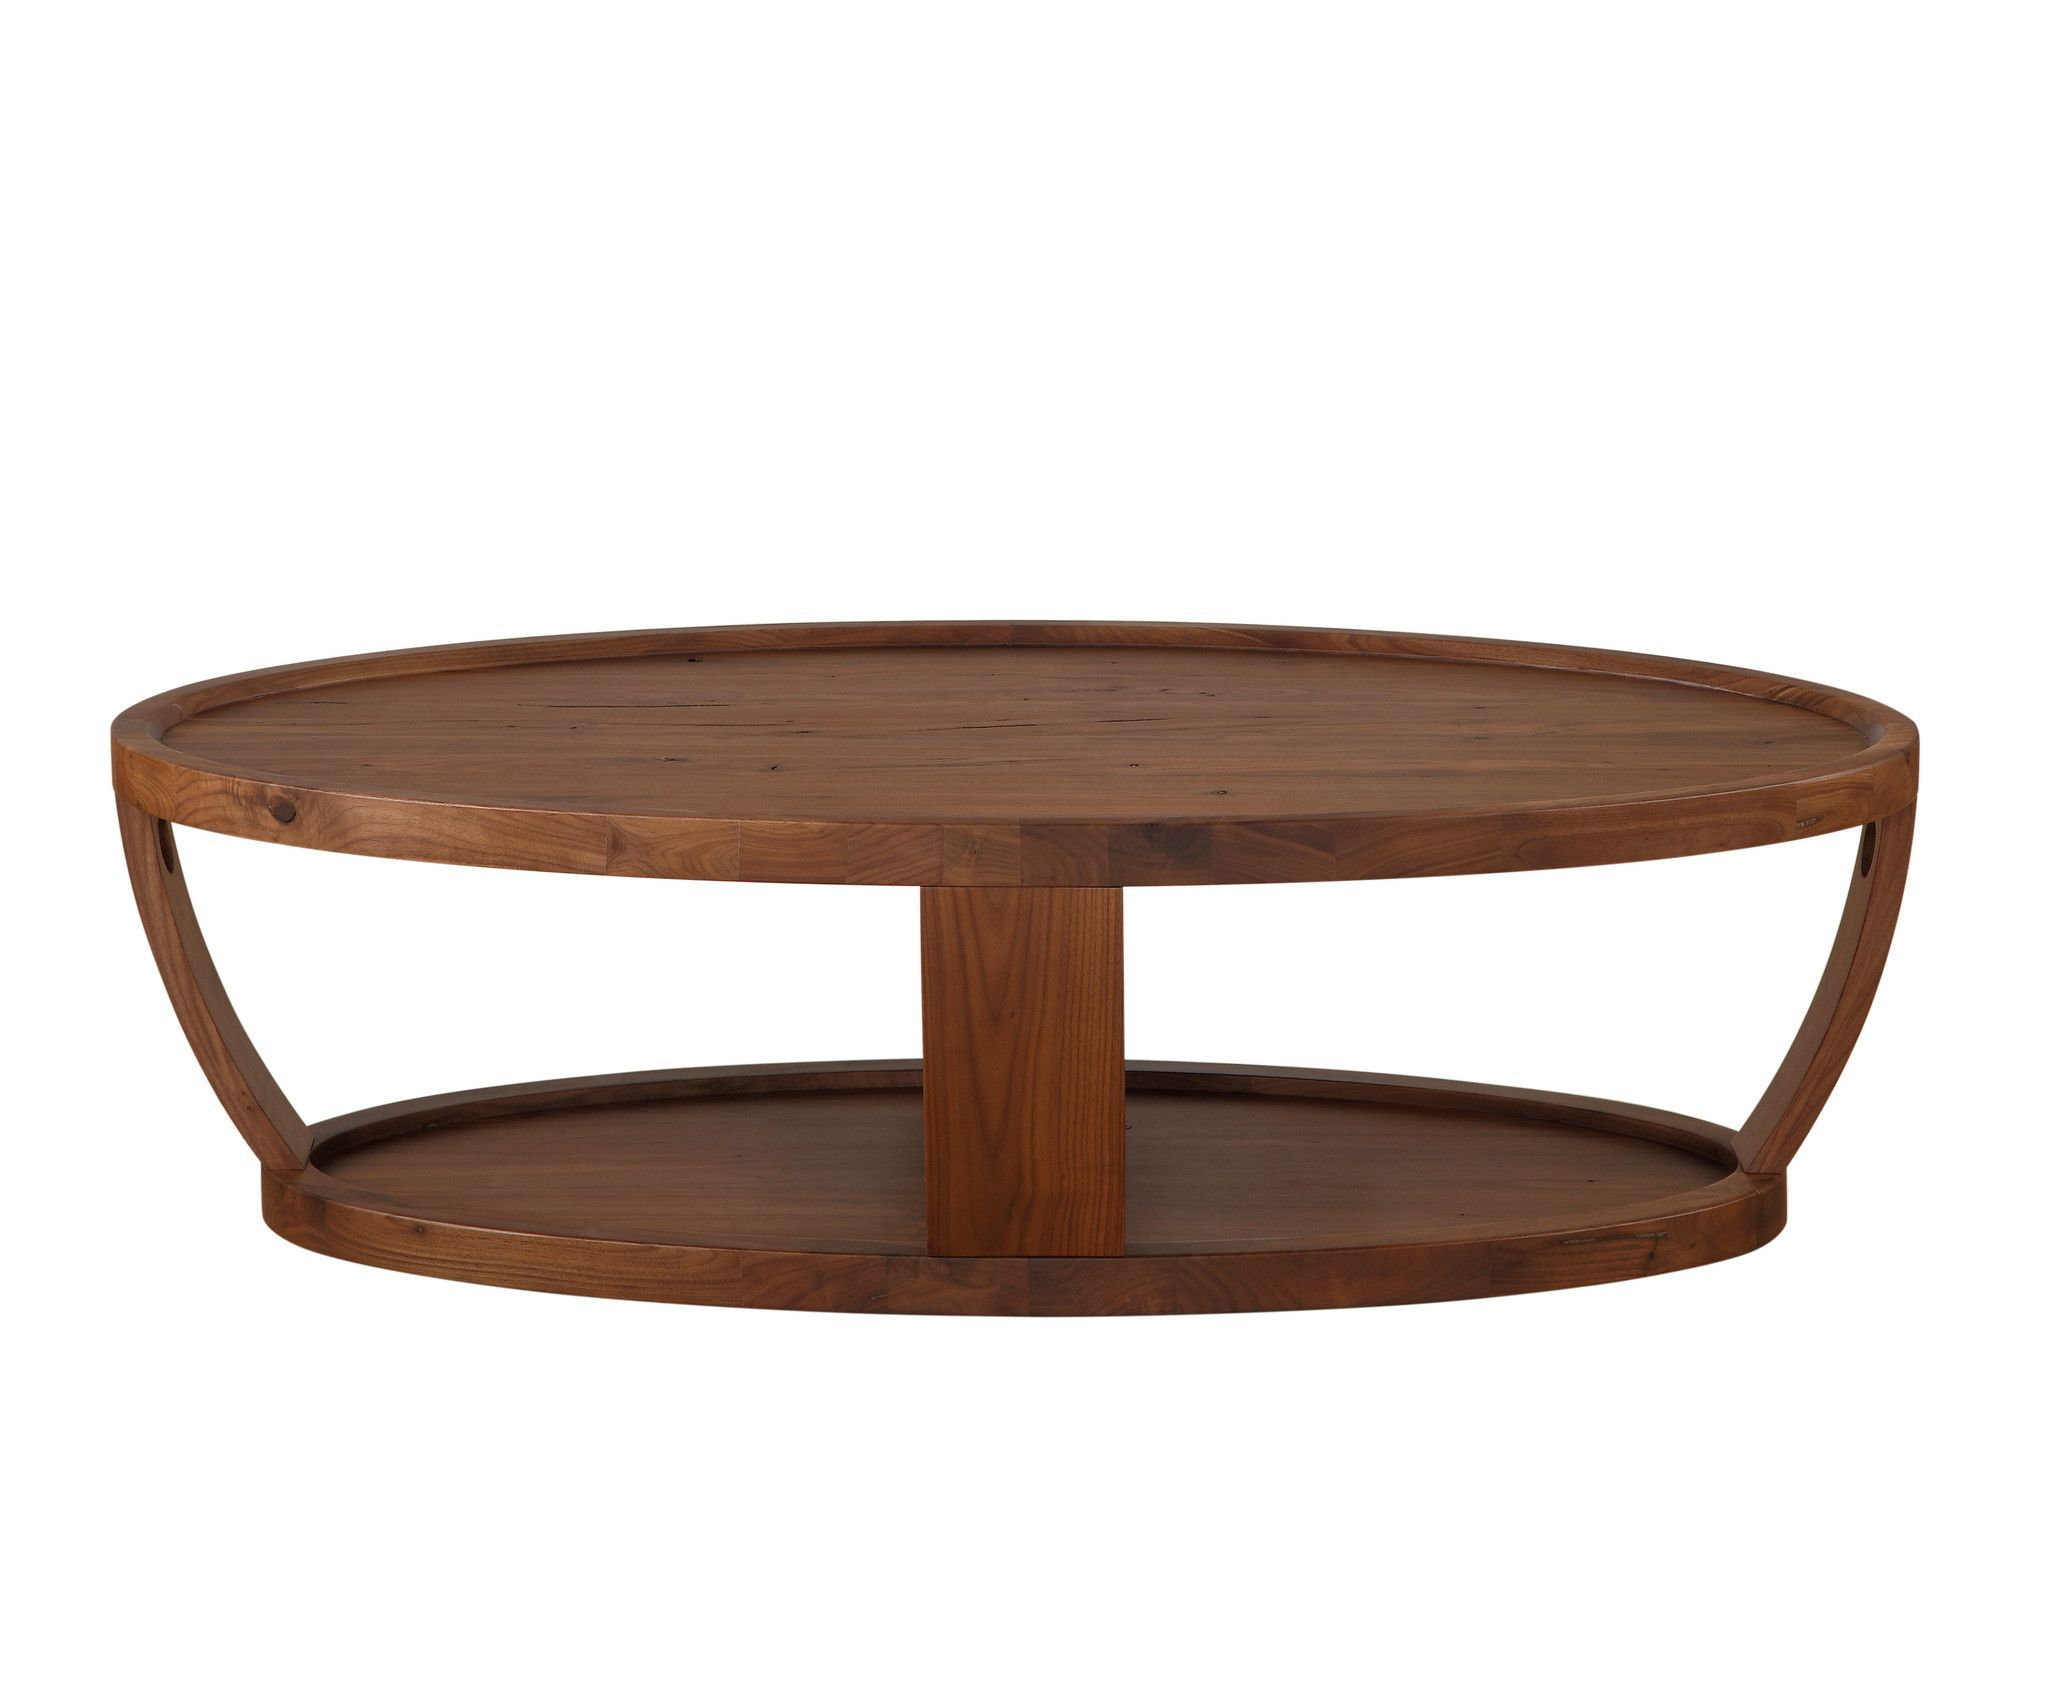 Dylan Oval Coffee Table Rustic Walnut Solid American Wood